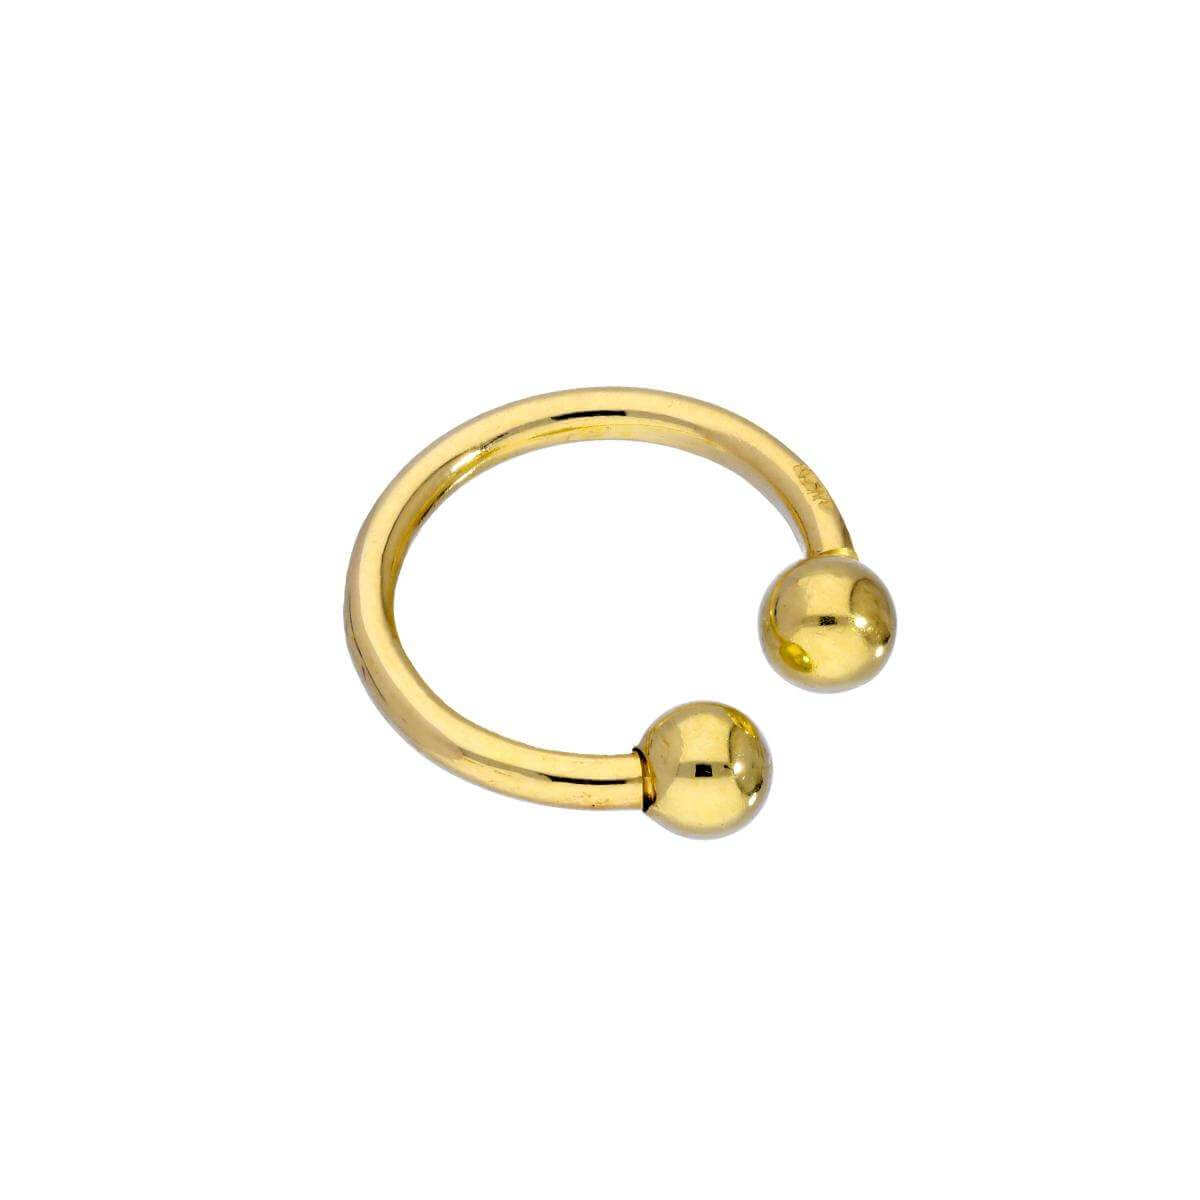 9ct Gold Ball End Small Ear Cuff